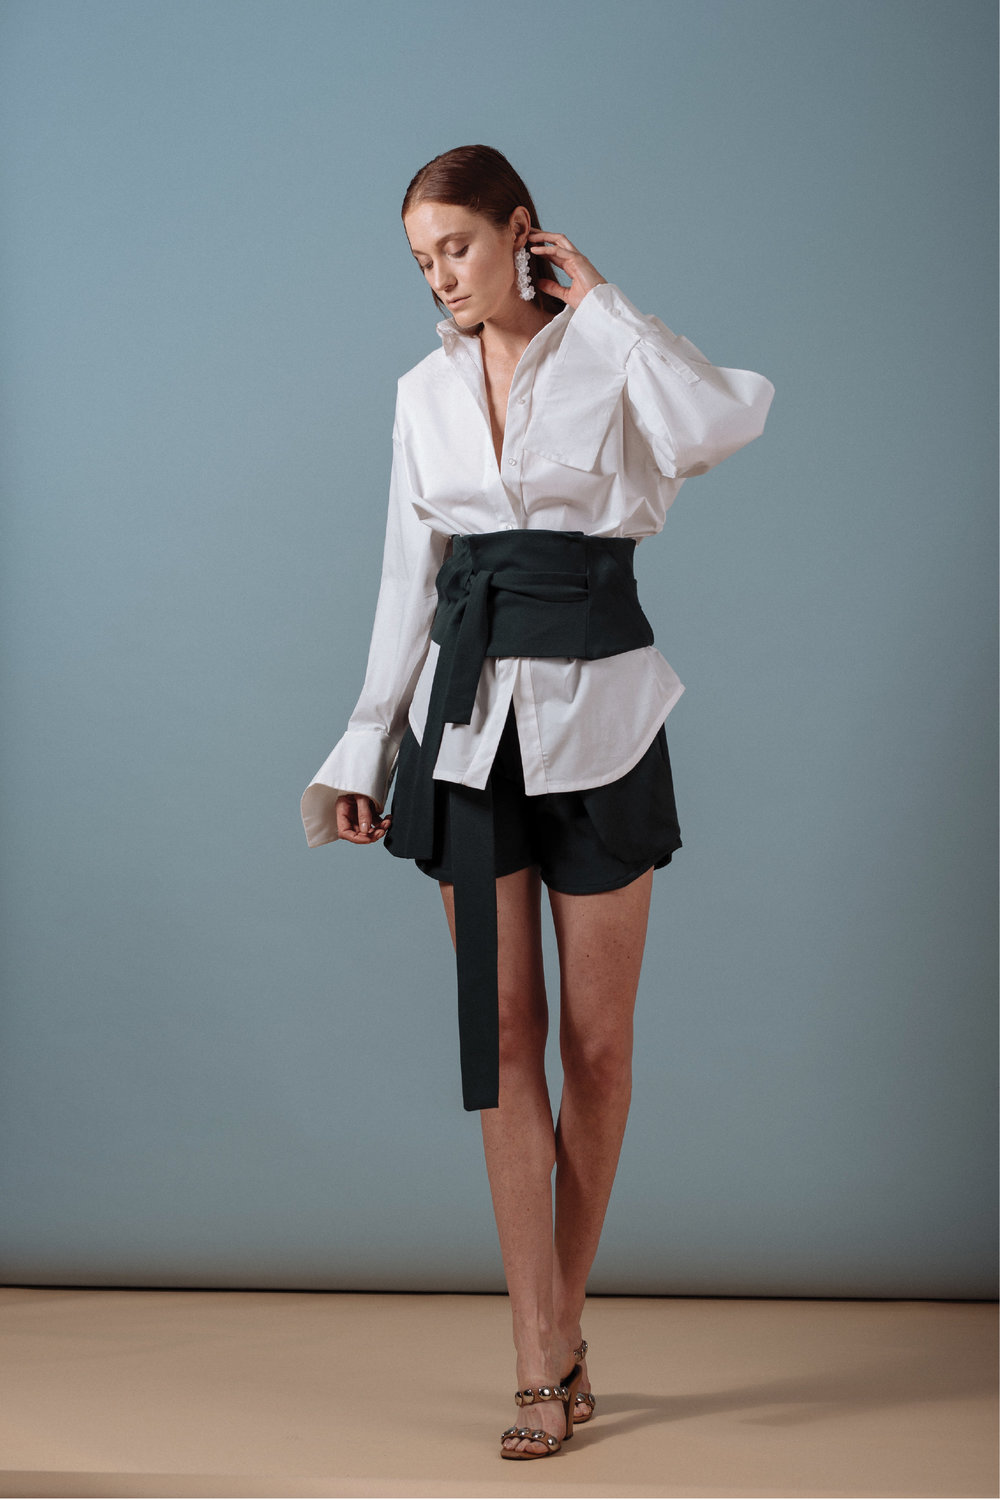 Look 1: #403 Yoko Shirt in White, #415 Kobe Corset w/ Pockets in Emerald, #408 Tomoe Shorts in Emerald